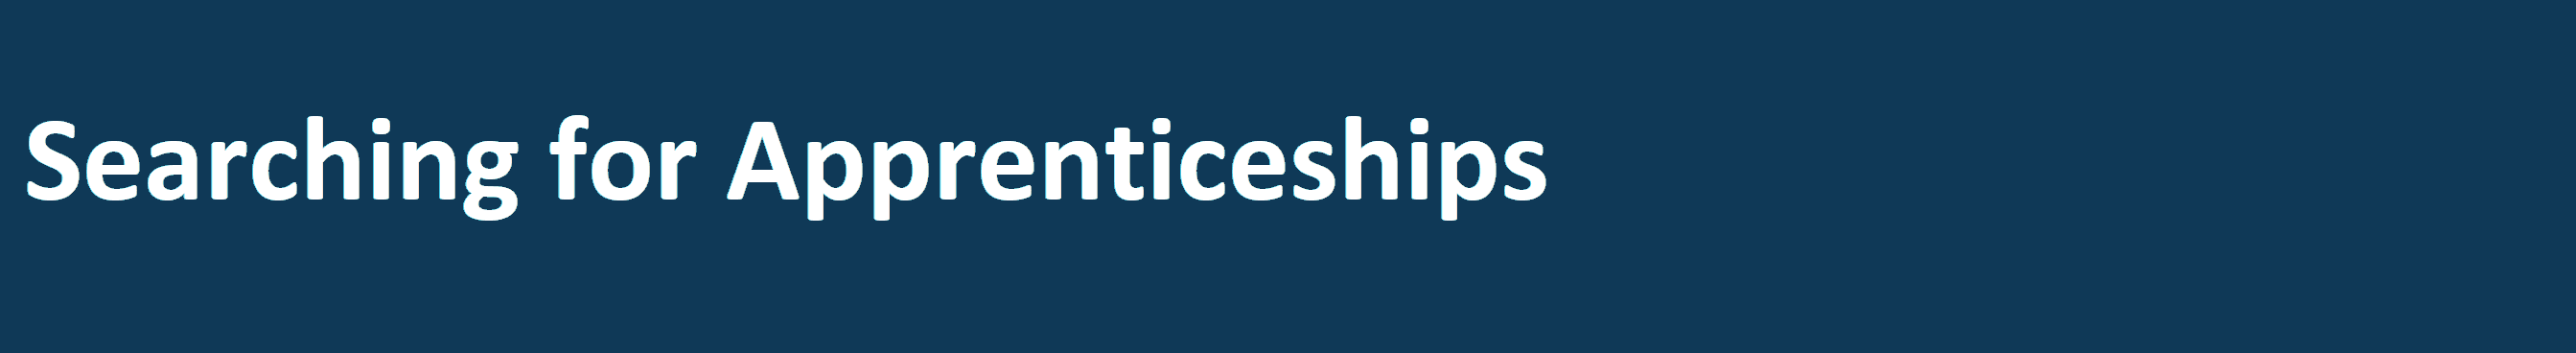 Search for Apprenticeships